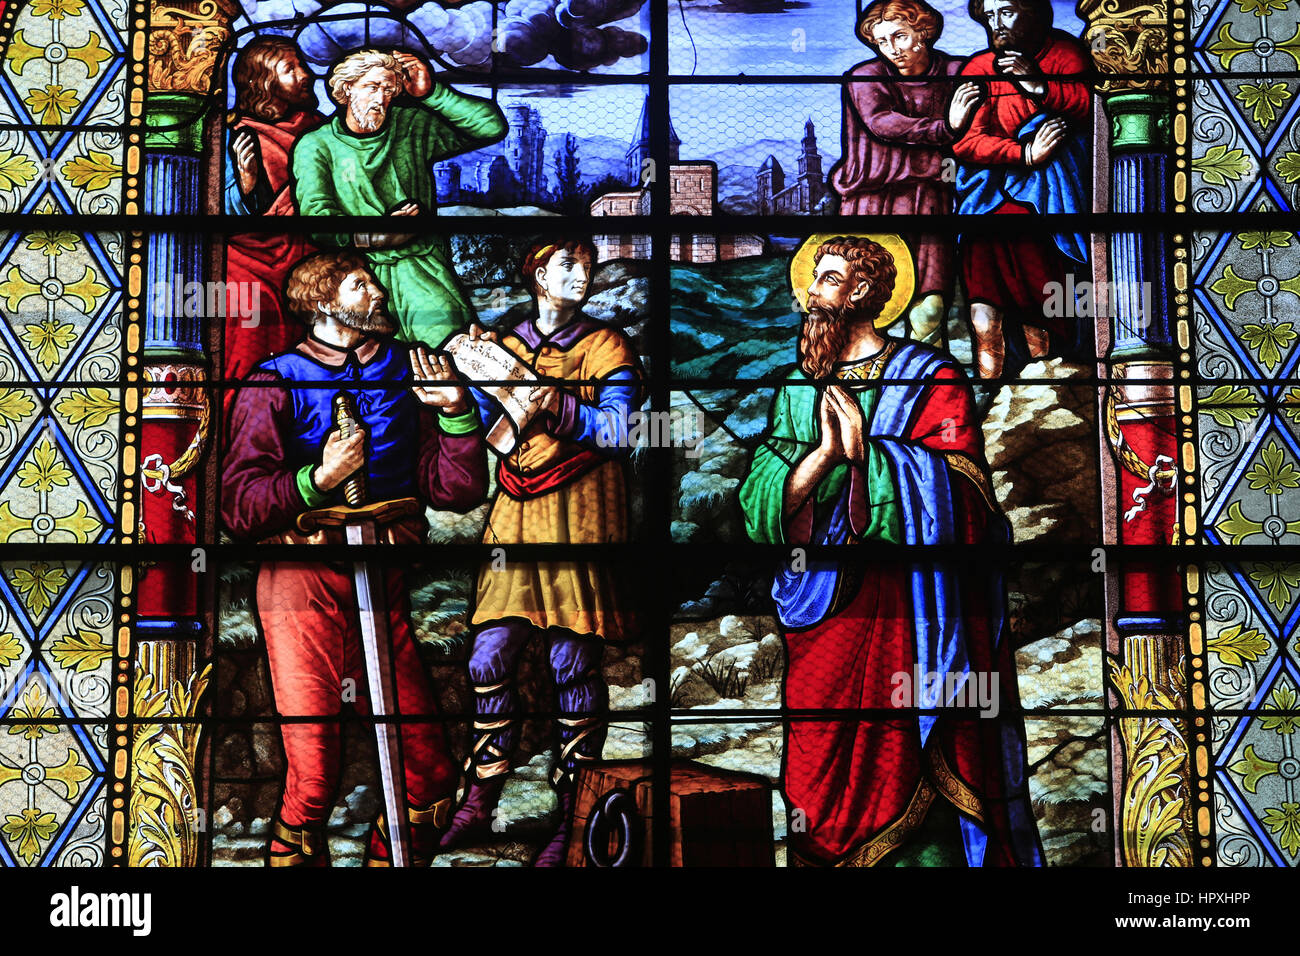 Martyrdom of St. Paul. Church of St. Peter. Toucy. Martyre de Saint-Paul. Eglise Saint-Pierre. Toucy. - Stock Image